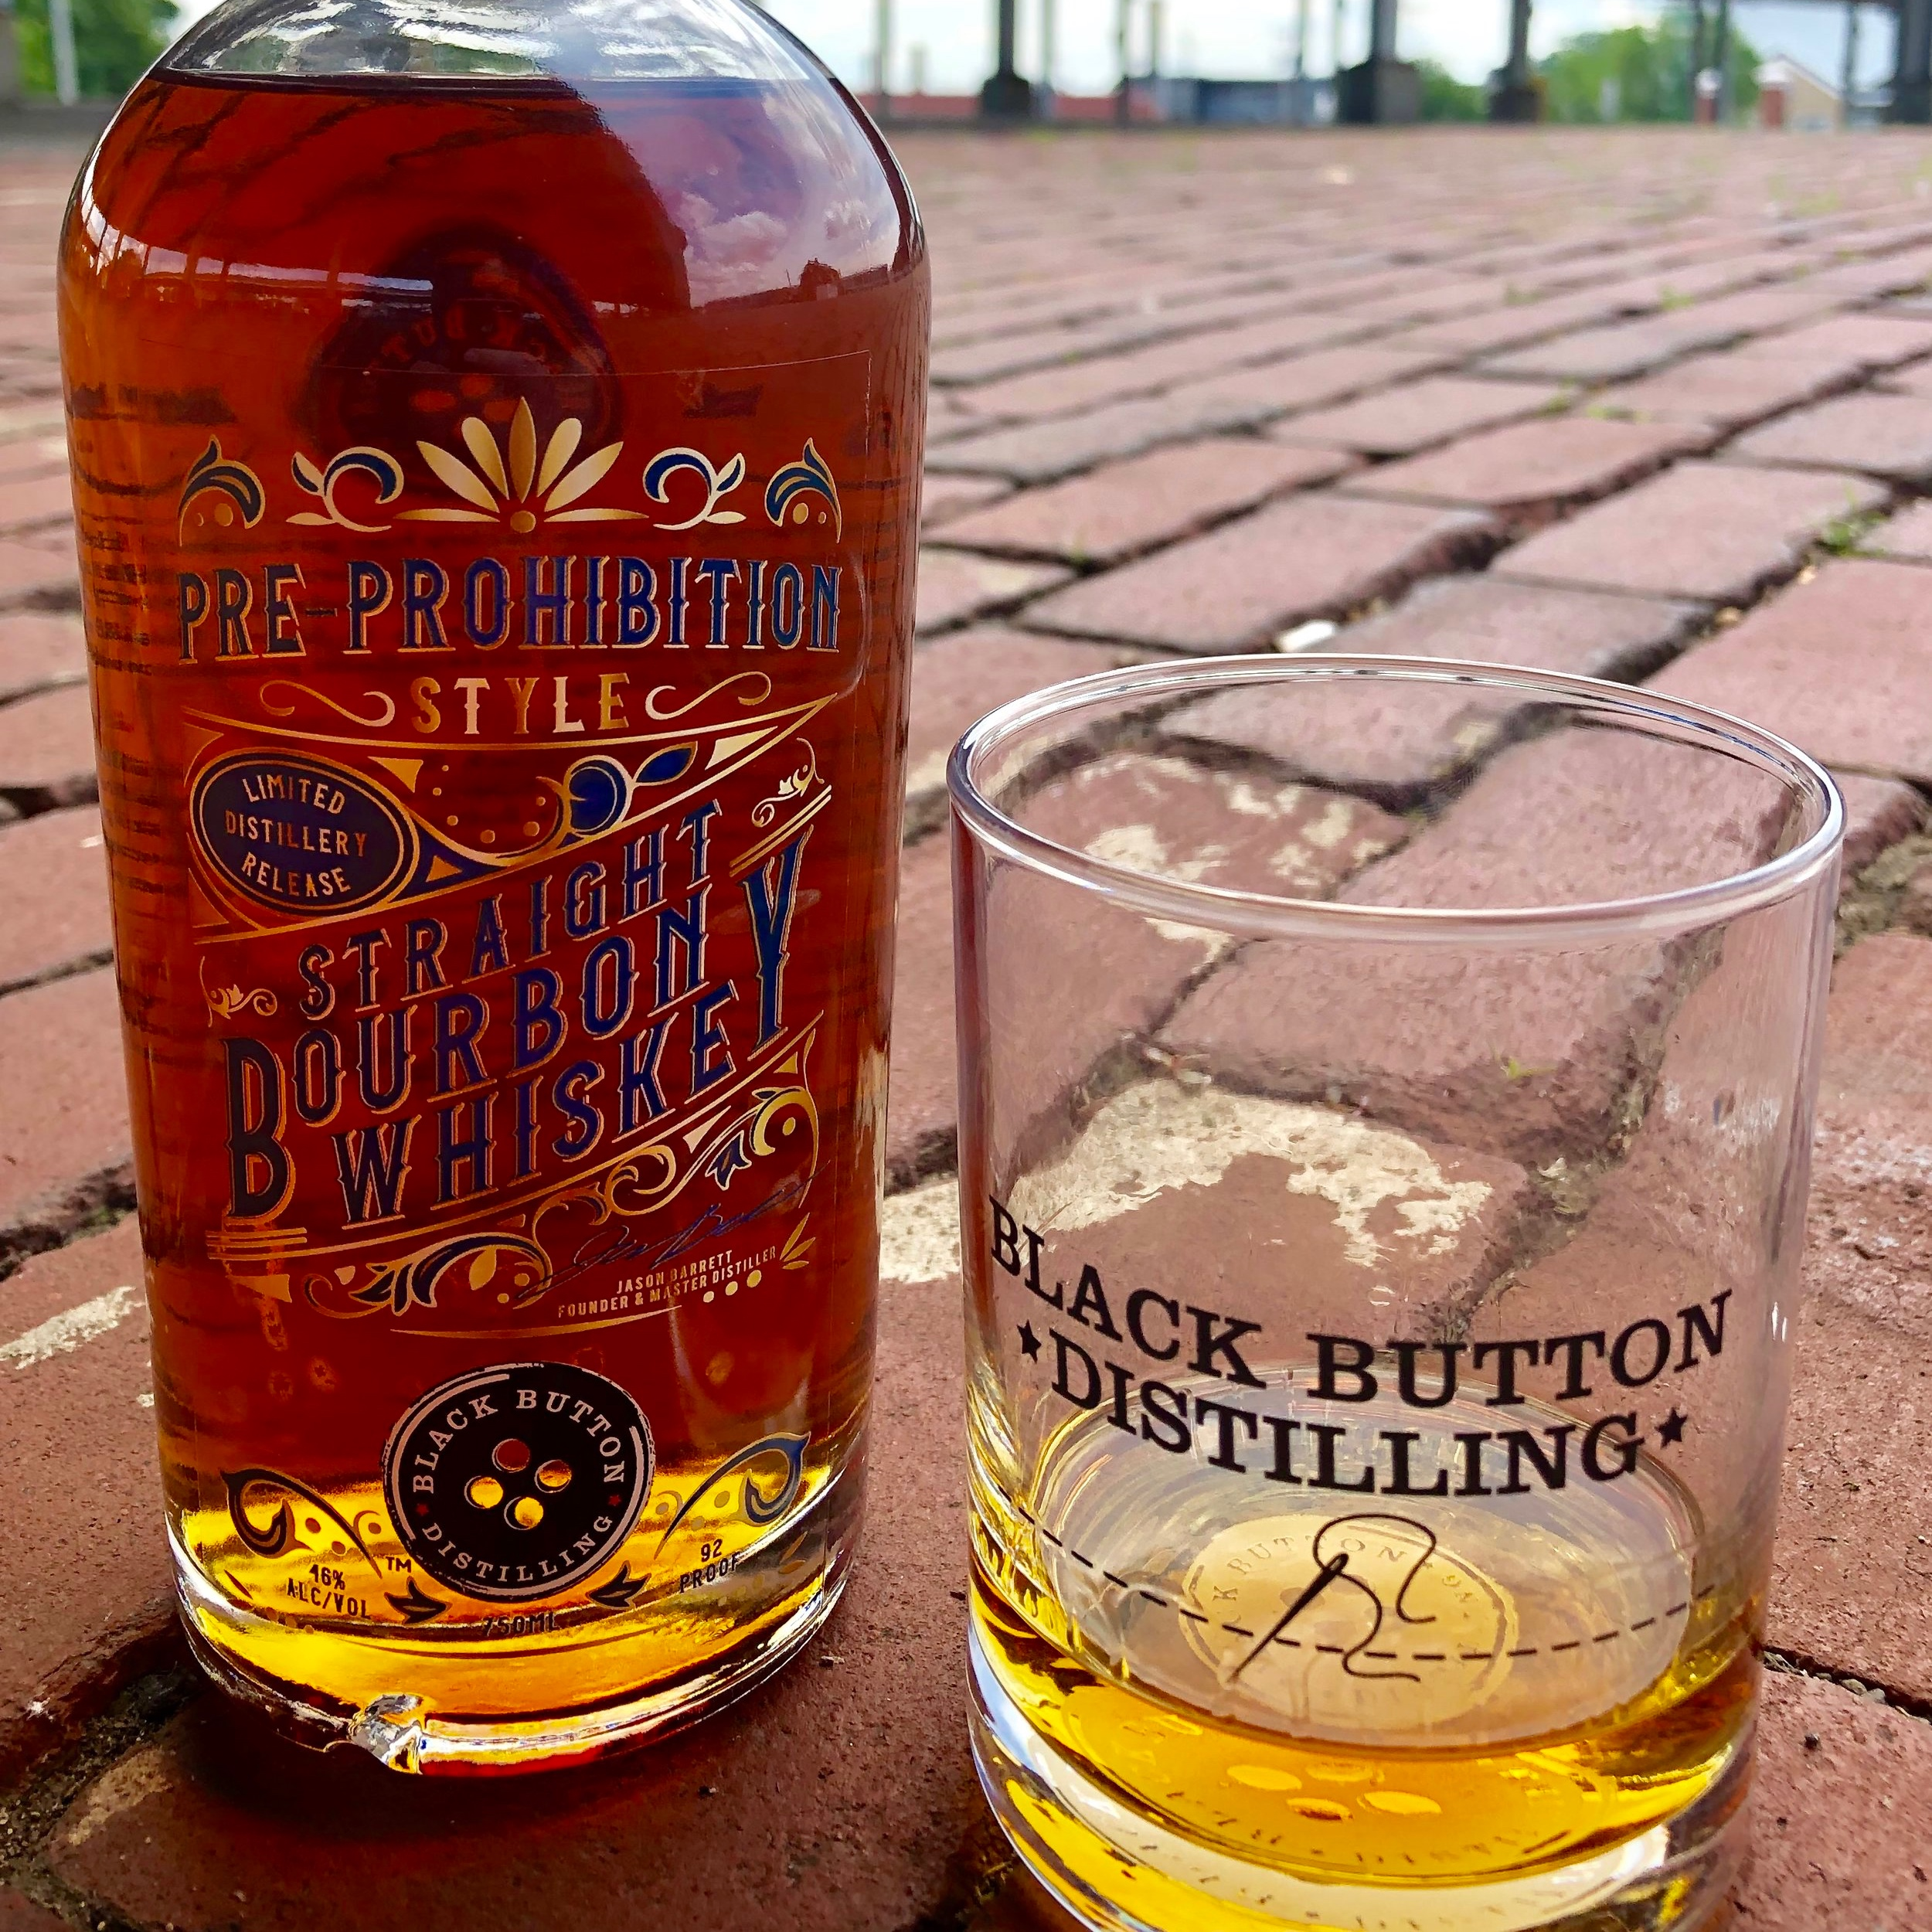 Black Button Distilling Award Winning Pre-Prohibition Style Straight Bourbon Whiskey